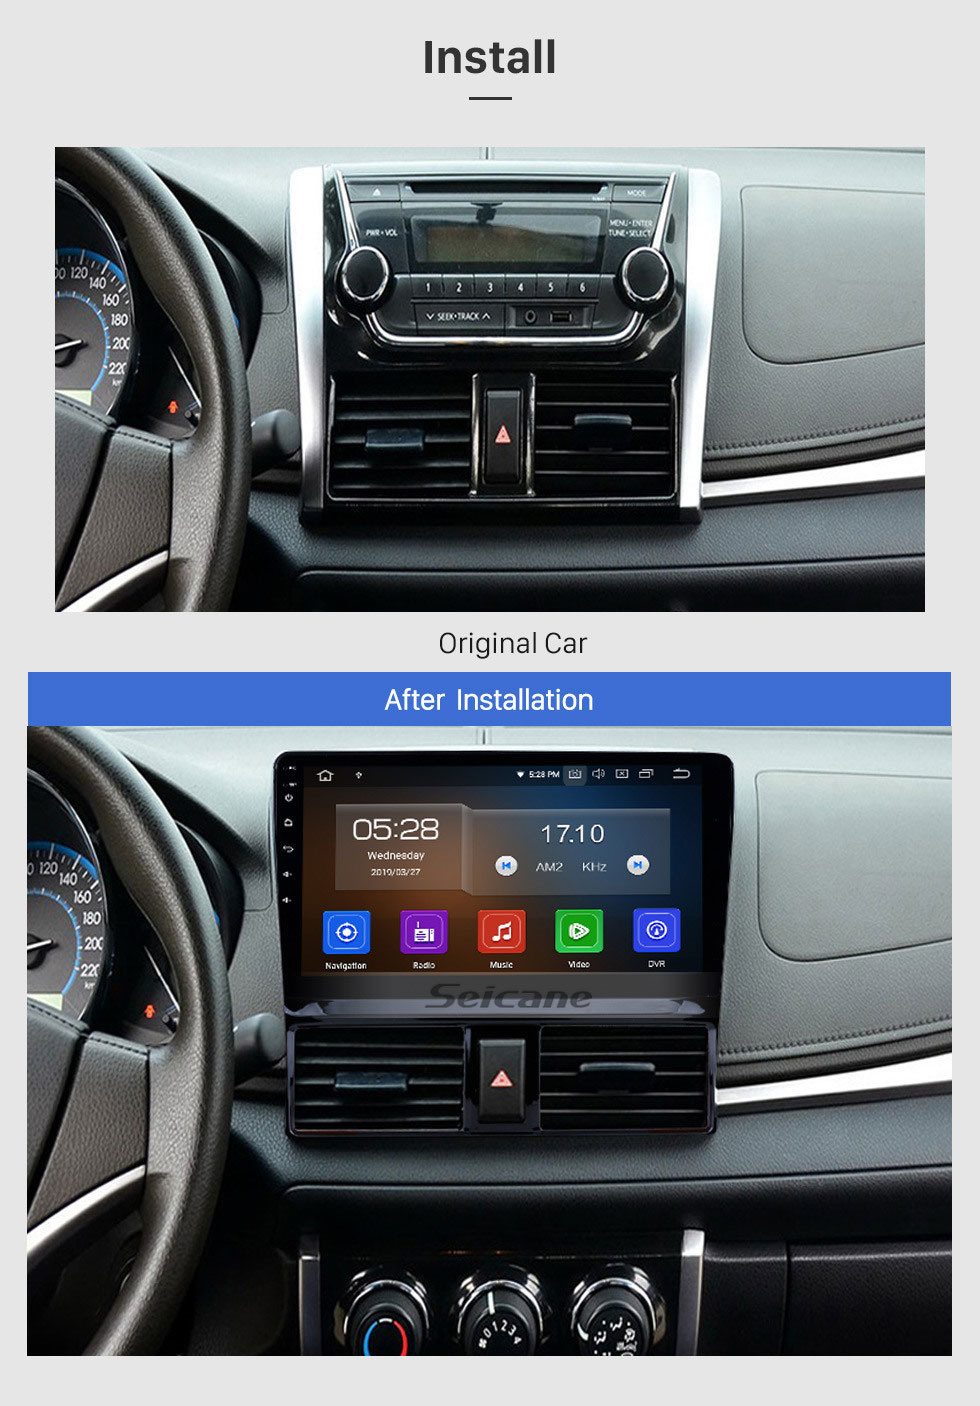 Seicane In Dash For 2013 2014 2015 2016 TOYOTA VIOS Android 10.0 Radio Upgrade with Bluetooth GPS Navigation Car Audio System Touch Screen WiFi DVD Player OBD2 Backup Camera DVR AUX